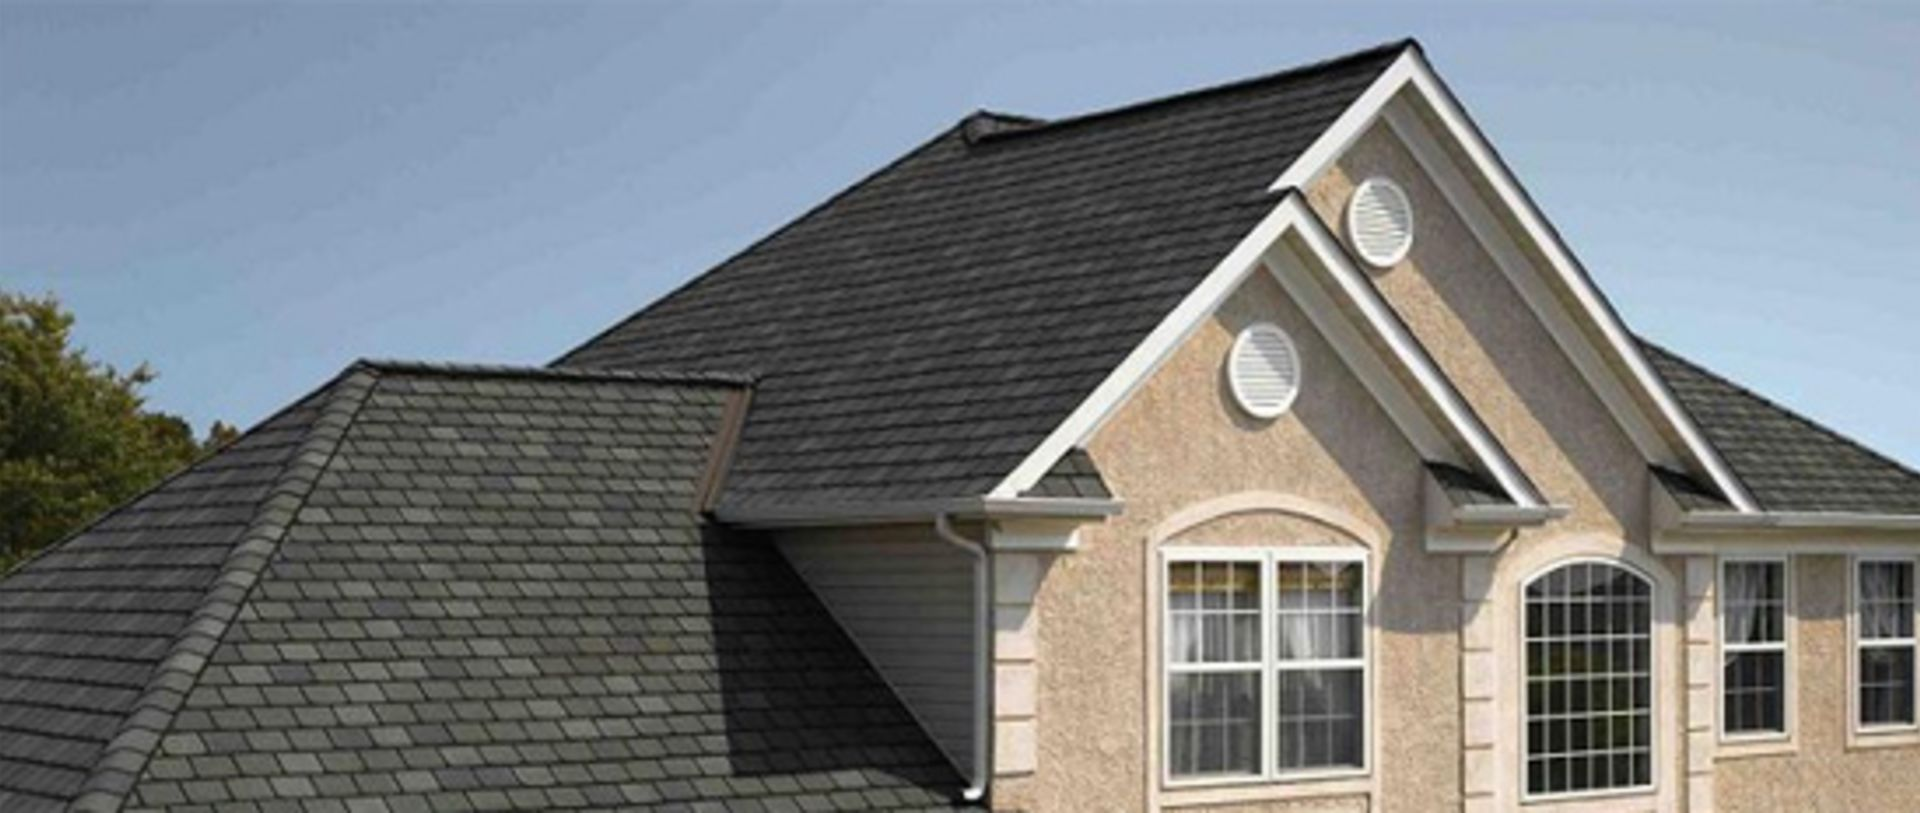 Will My New Roof Increase the Value of my Home?